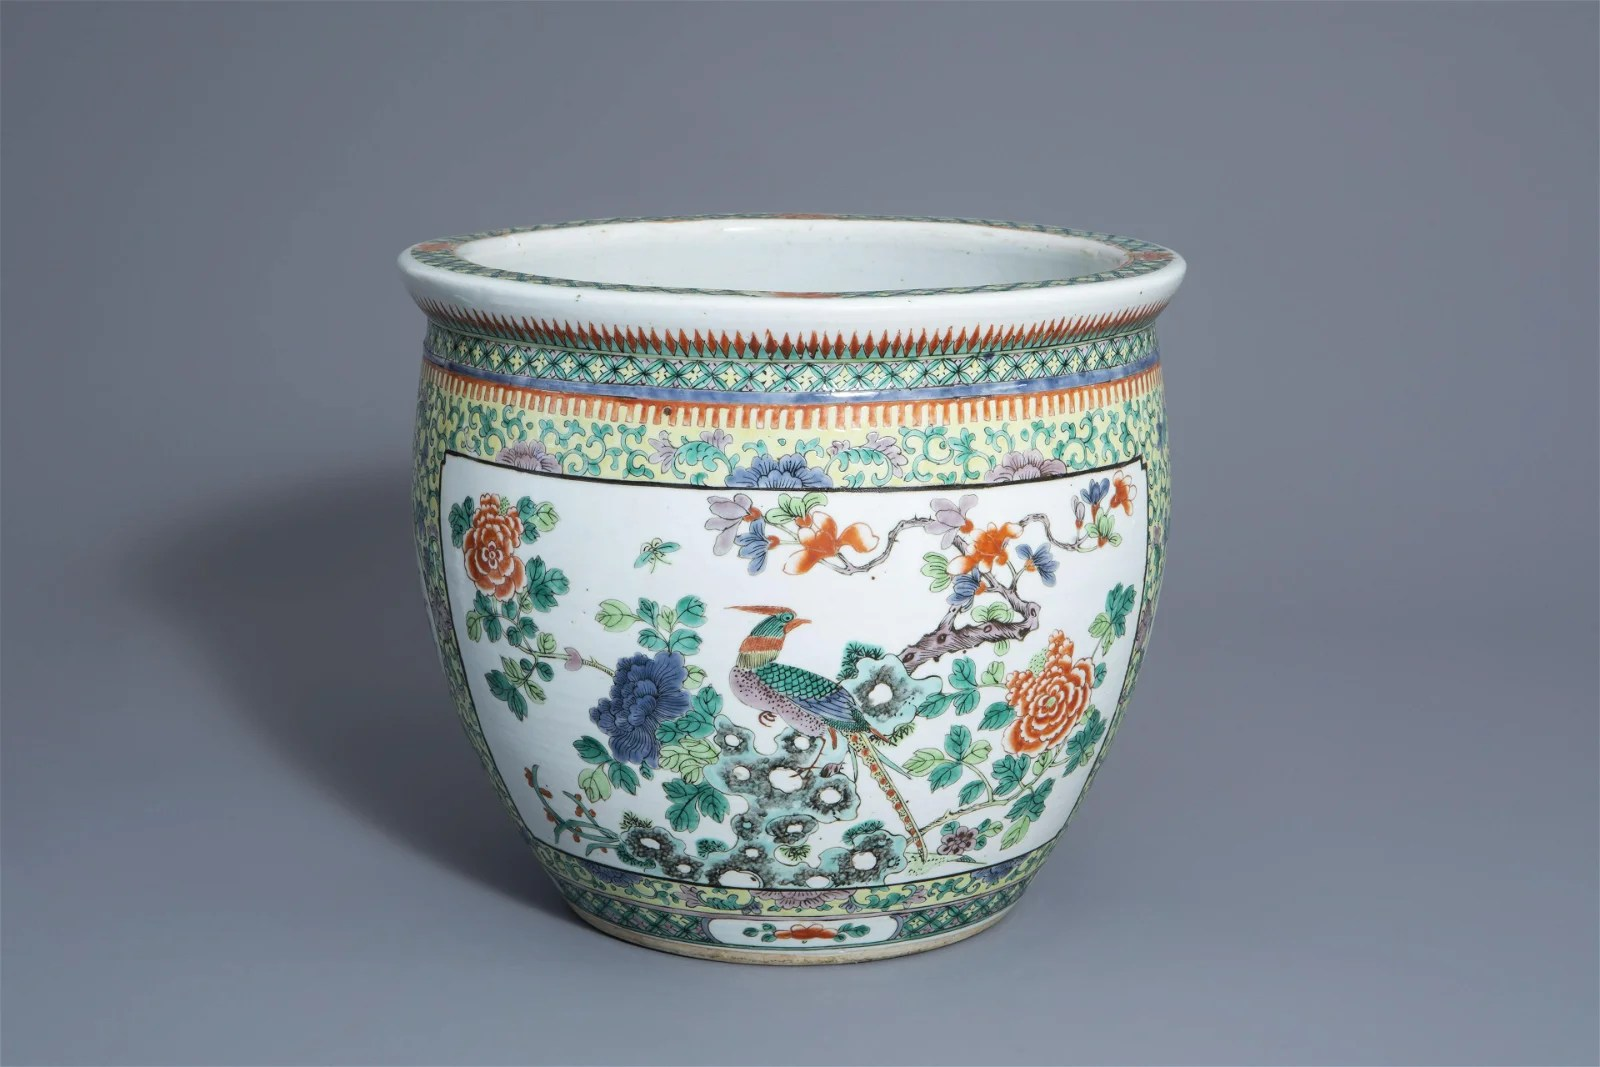 A Chinese famille verte fish bowl with a bird among